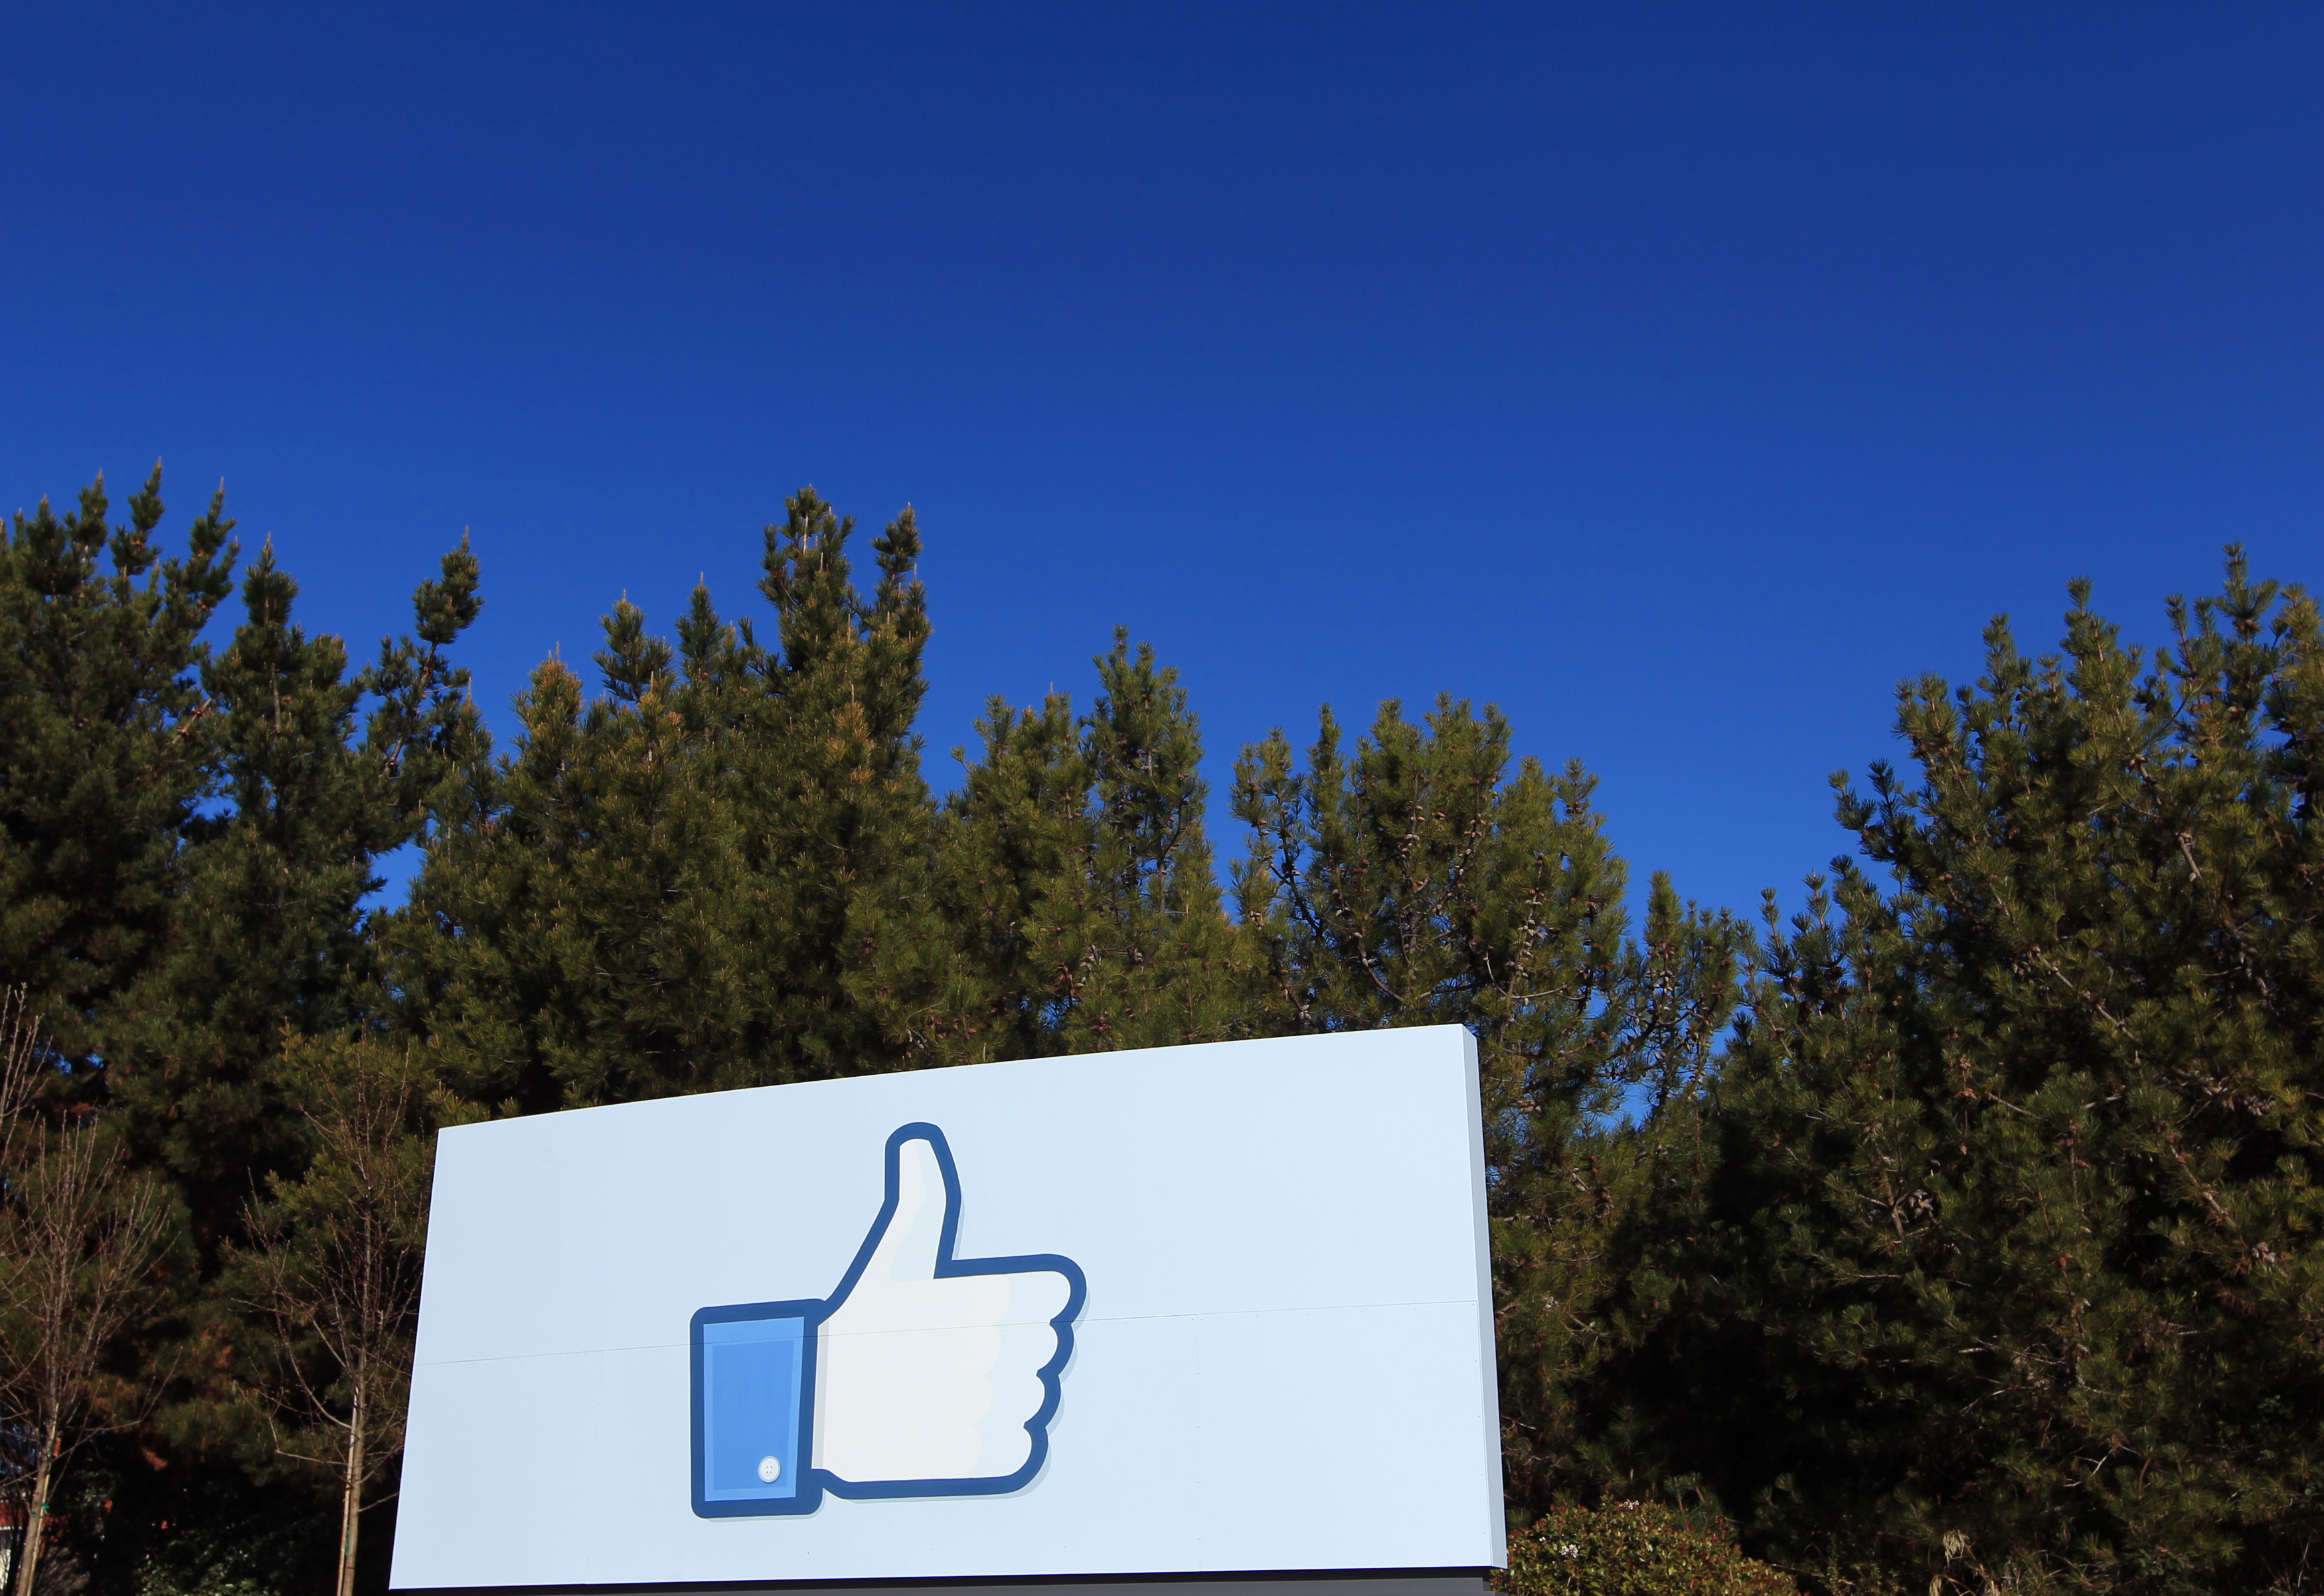 Facebook is luring creators with $1 billion in payouts